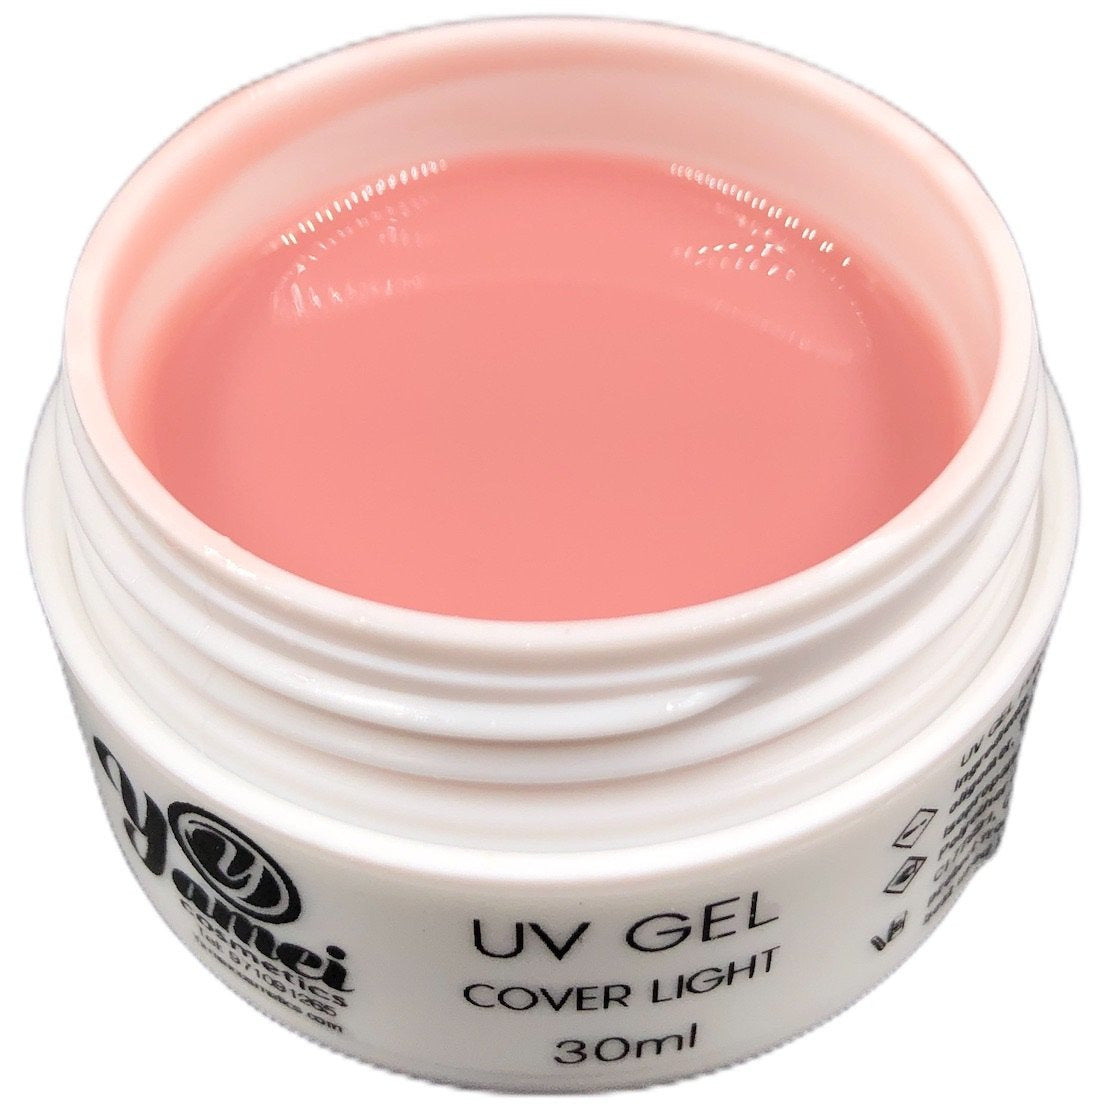 Gel constructor 50ml - Cover Light